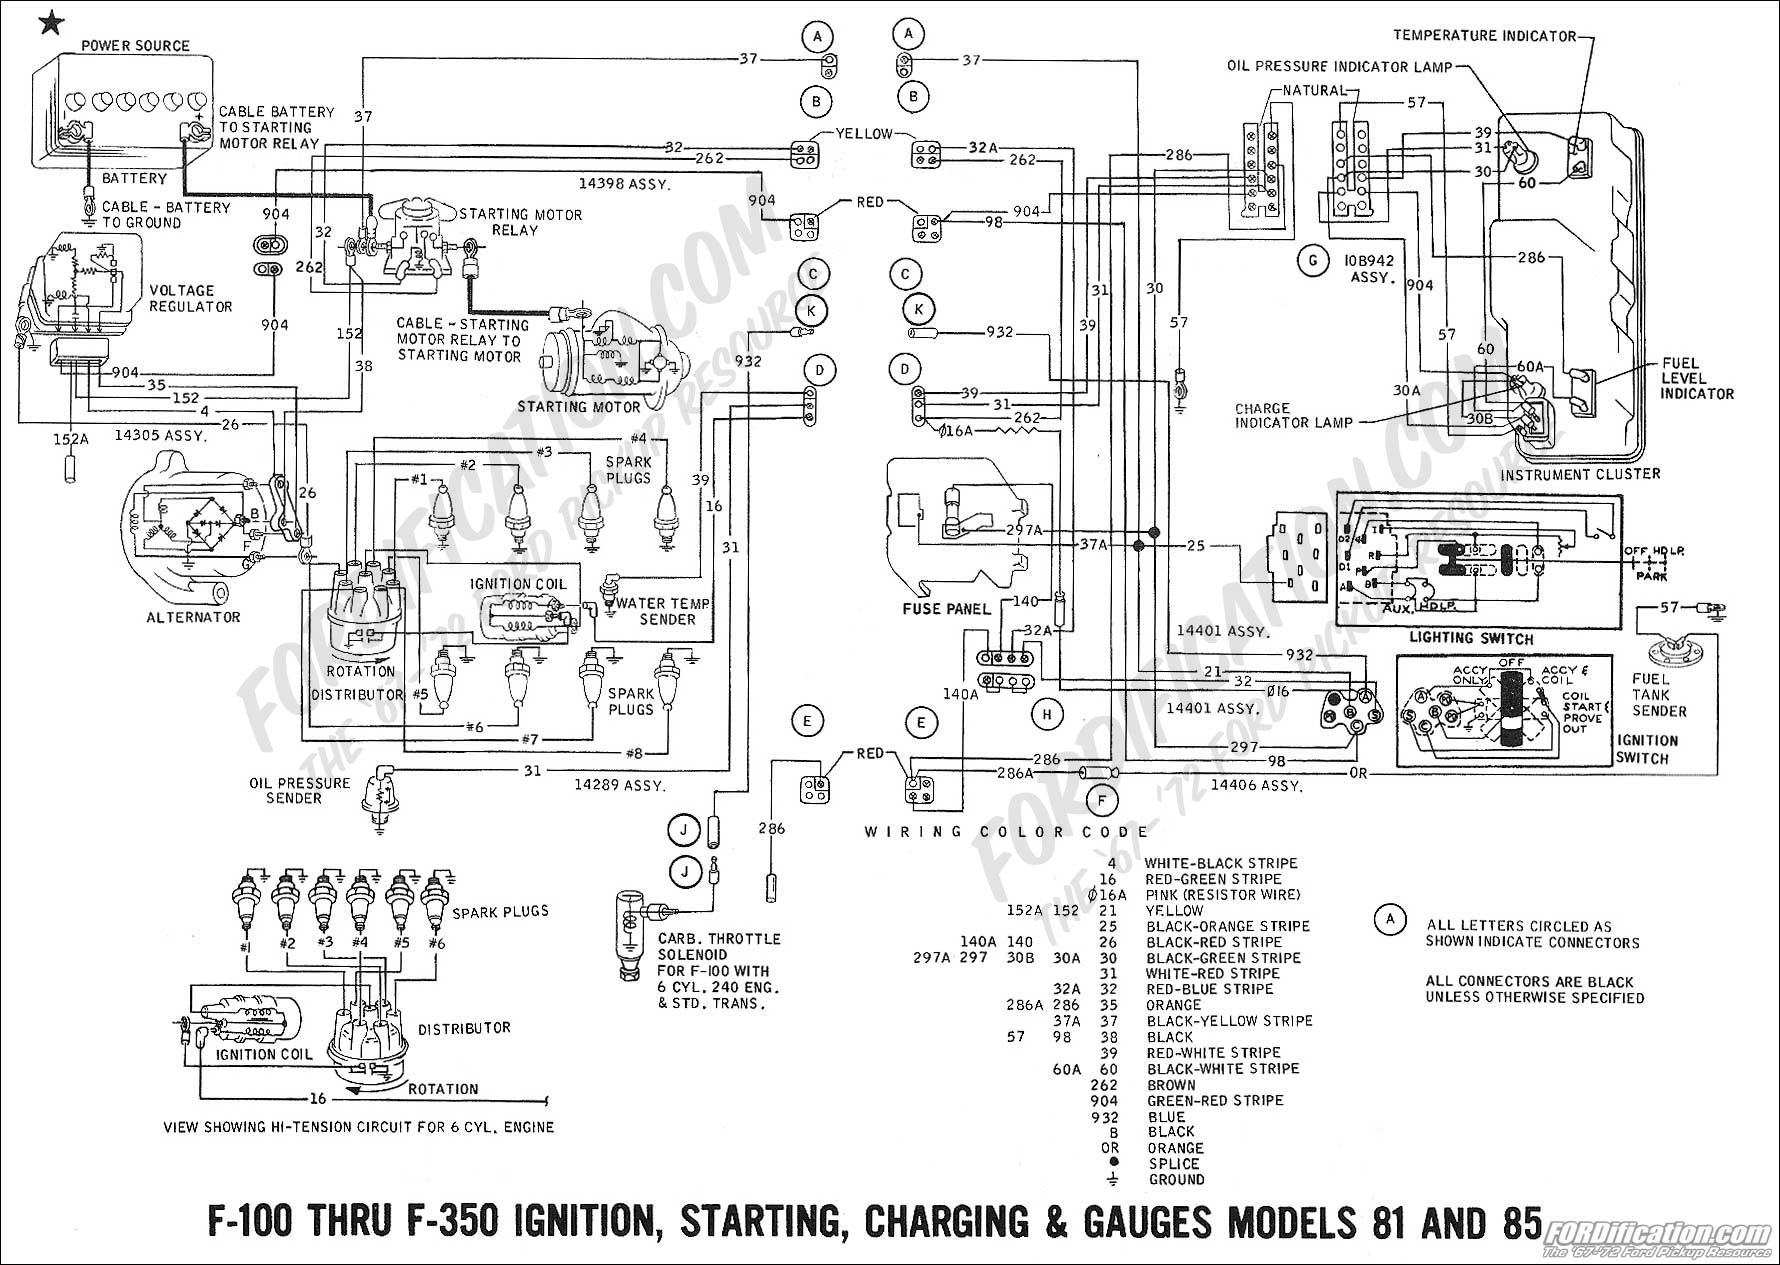 hight resolution of 1980 f100 wiring diagram automotive wiring diagrams ford spark plugs 1980 ford truck wiring diagram wiring